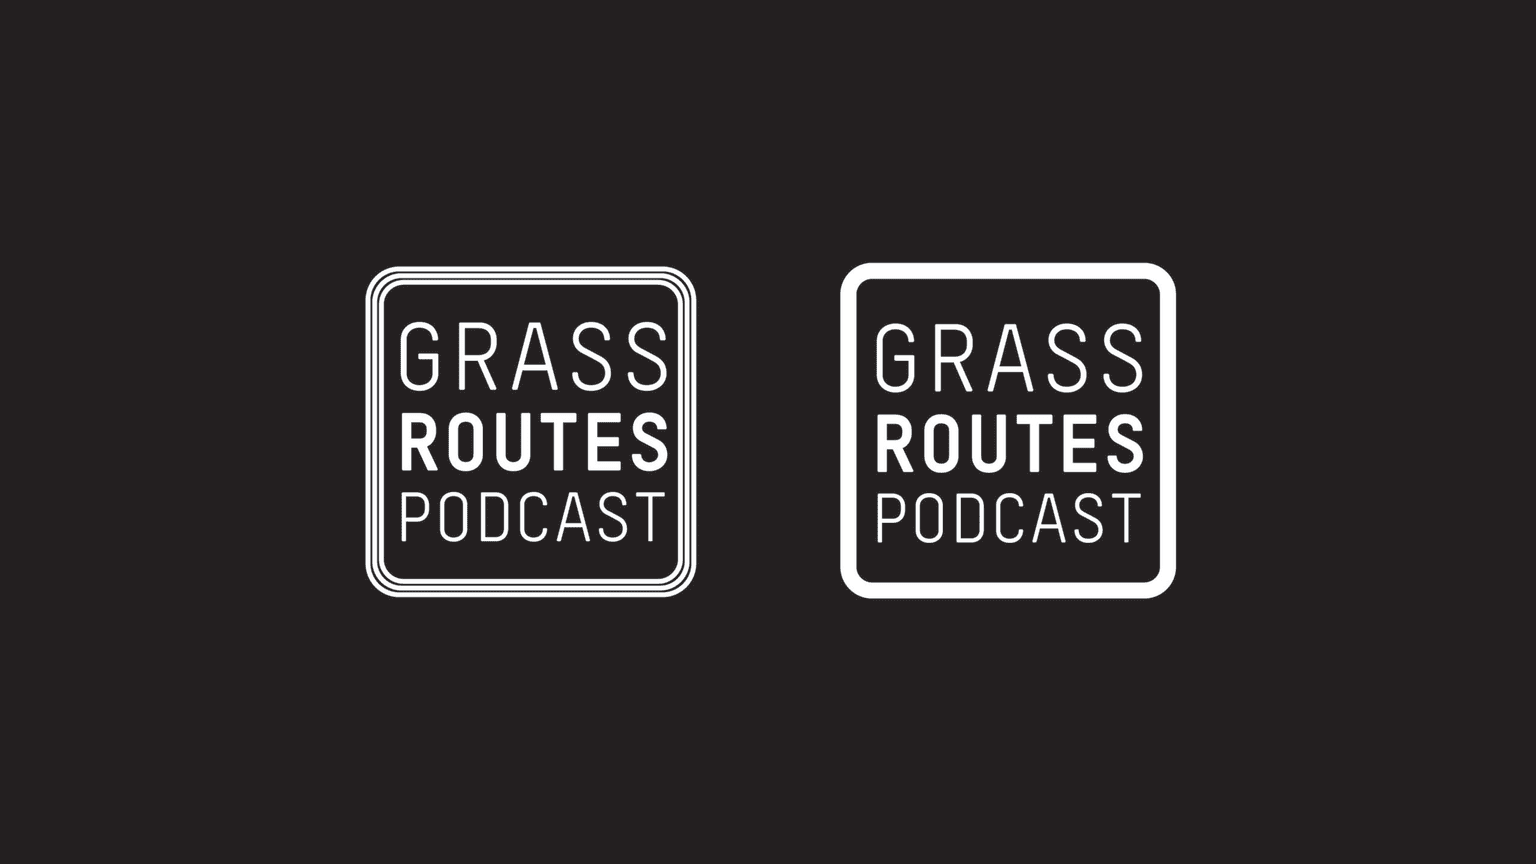 Grass Routes Podcast